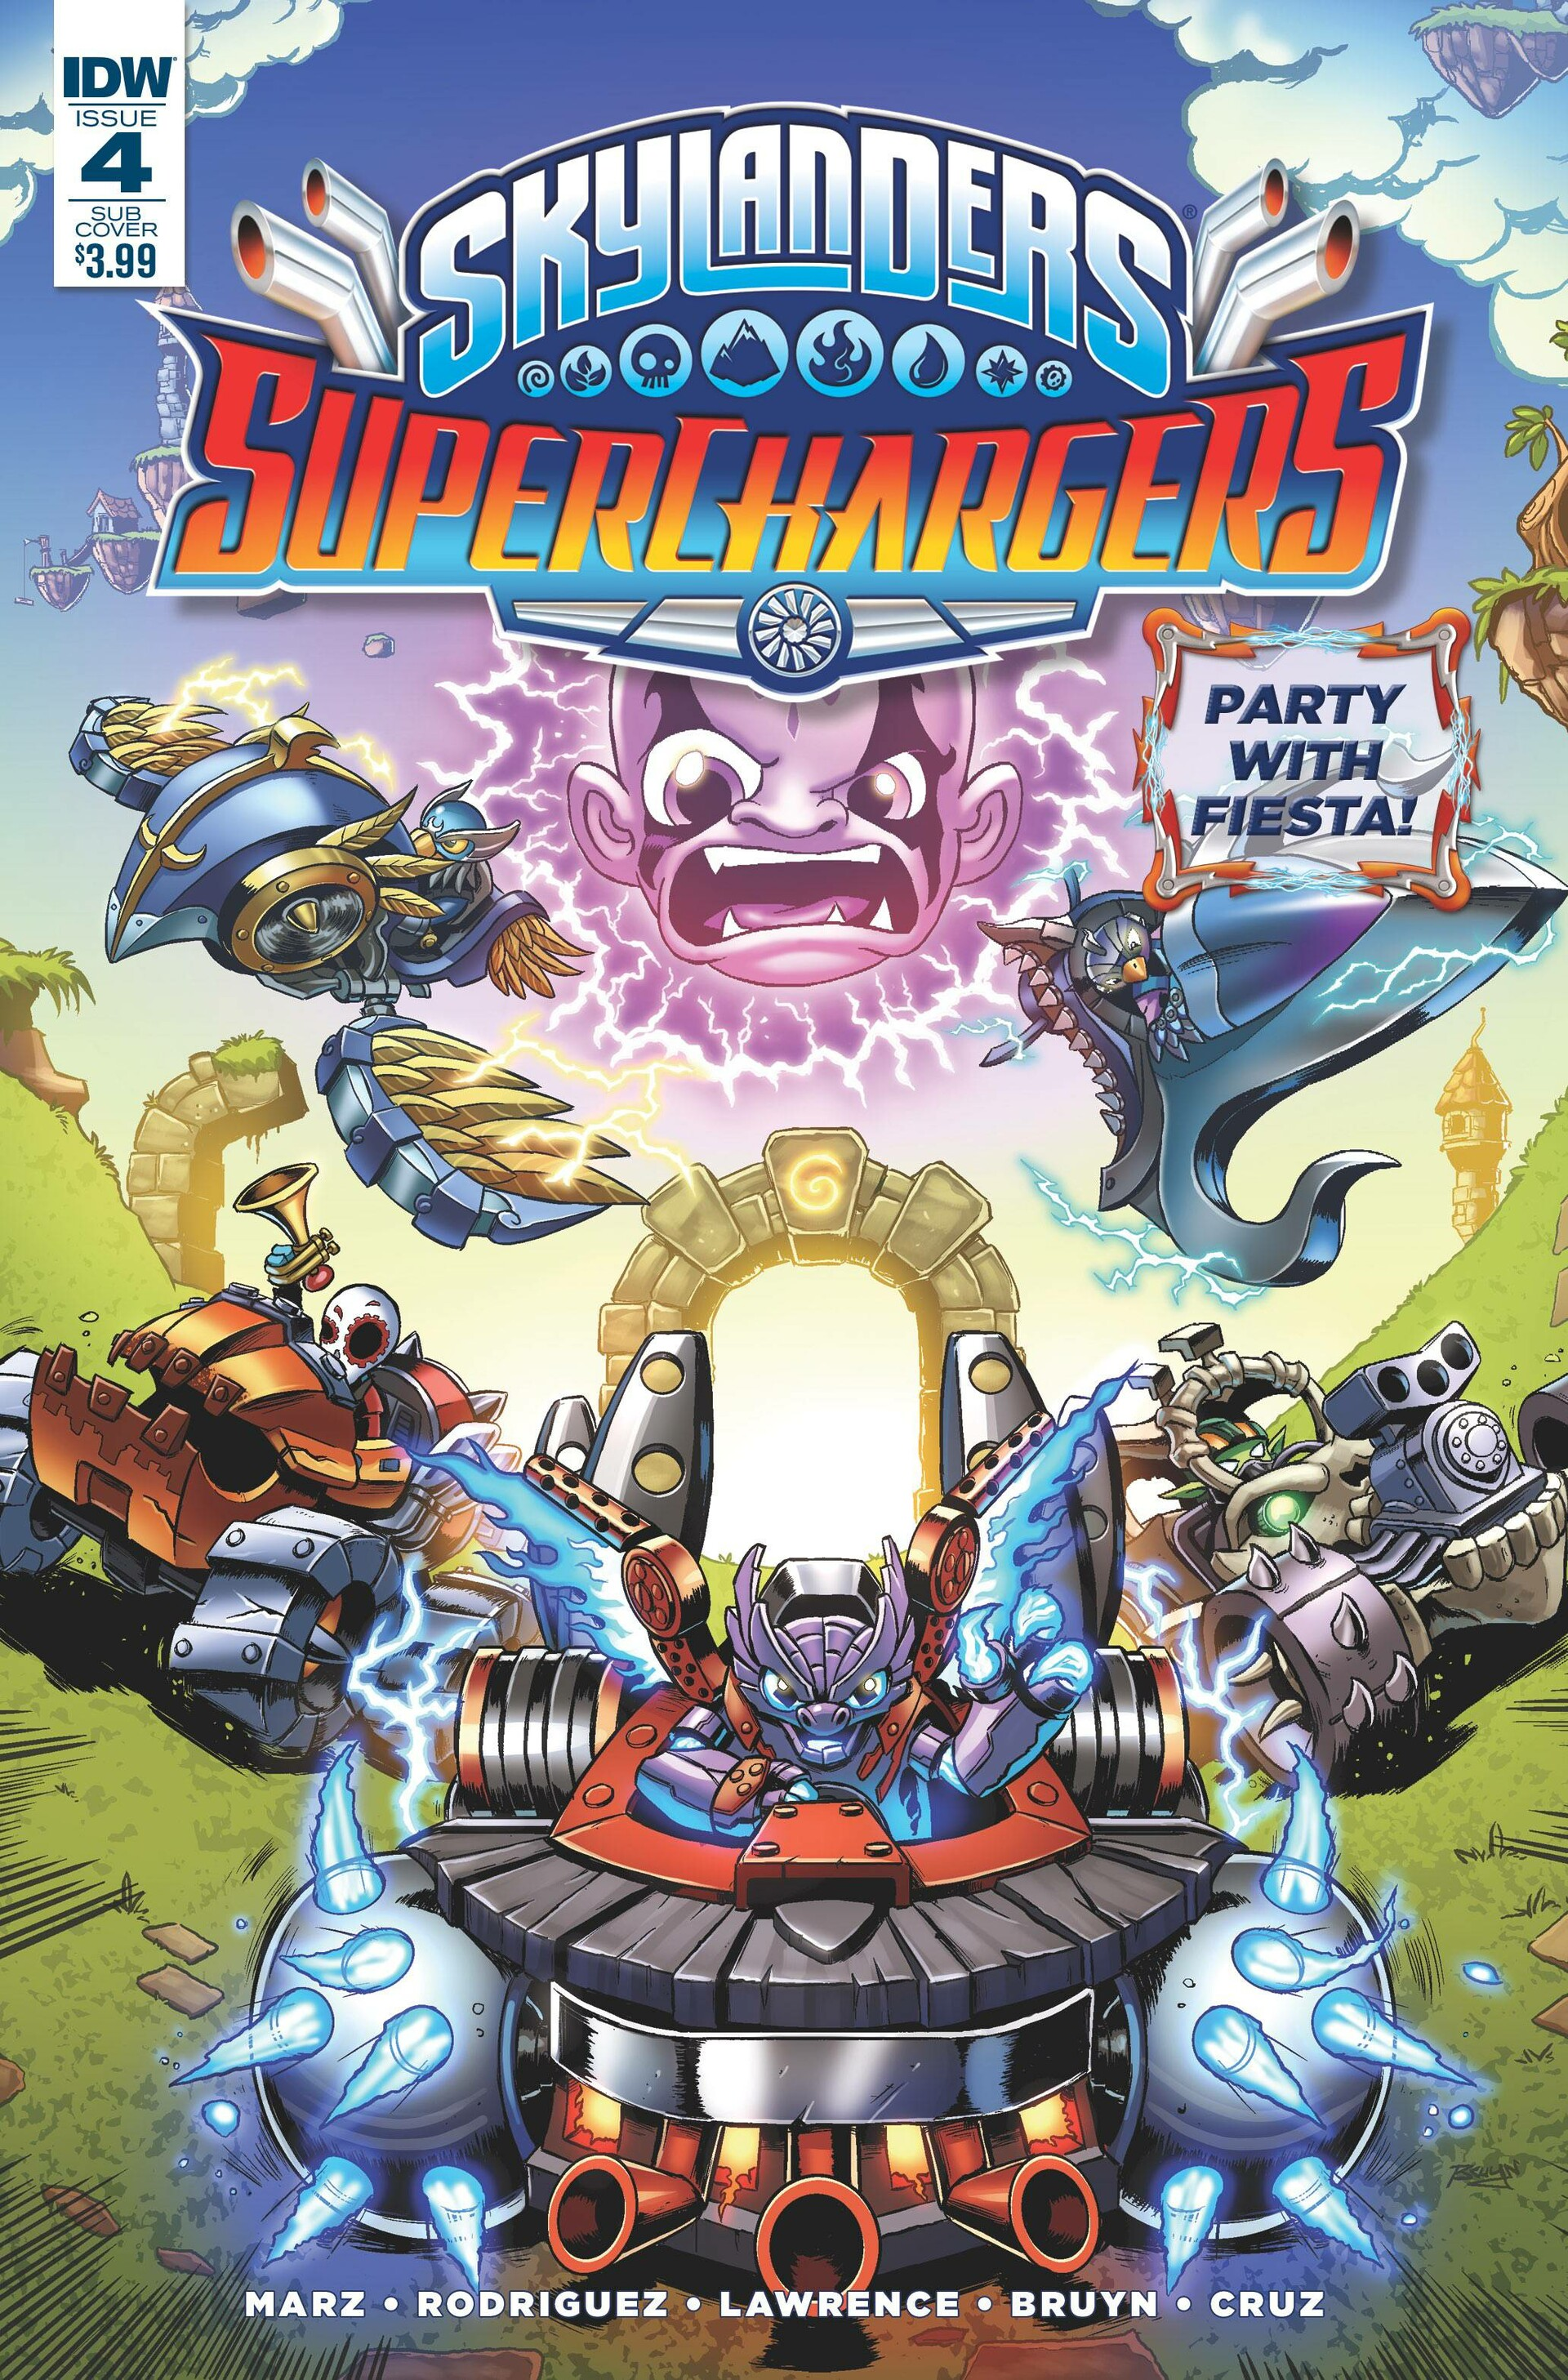 SuperChargers Issue 4